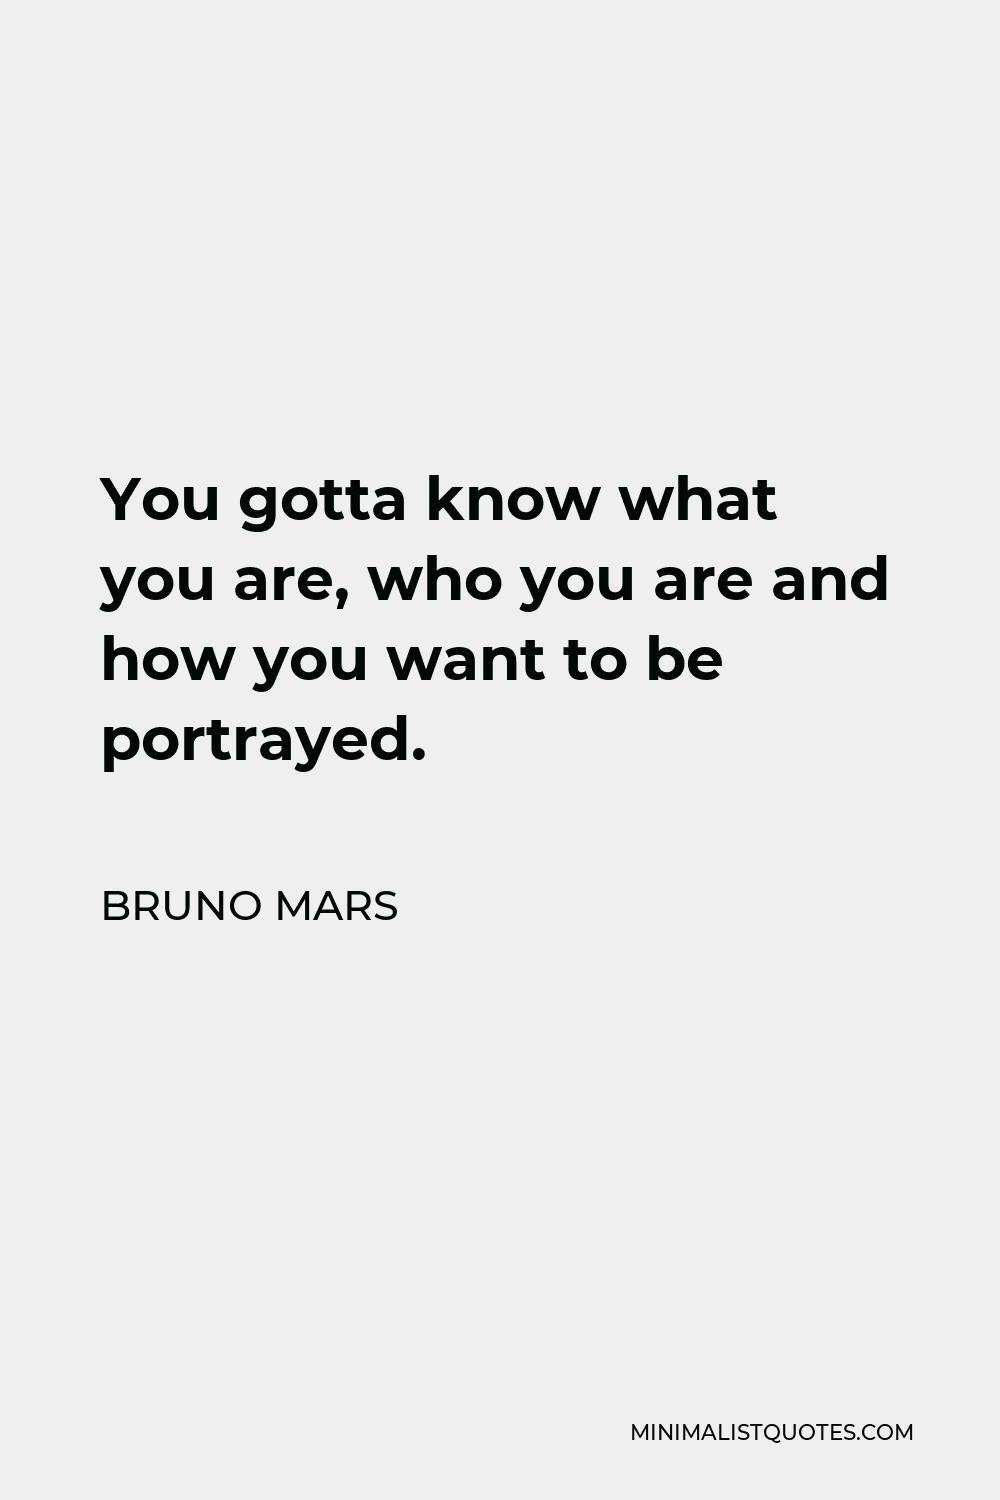 Bruno Mars Quote - You gotta know what you are, who you are and how you want to be portrayed.